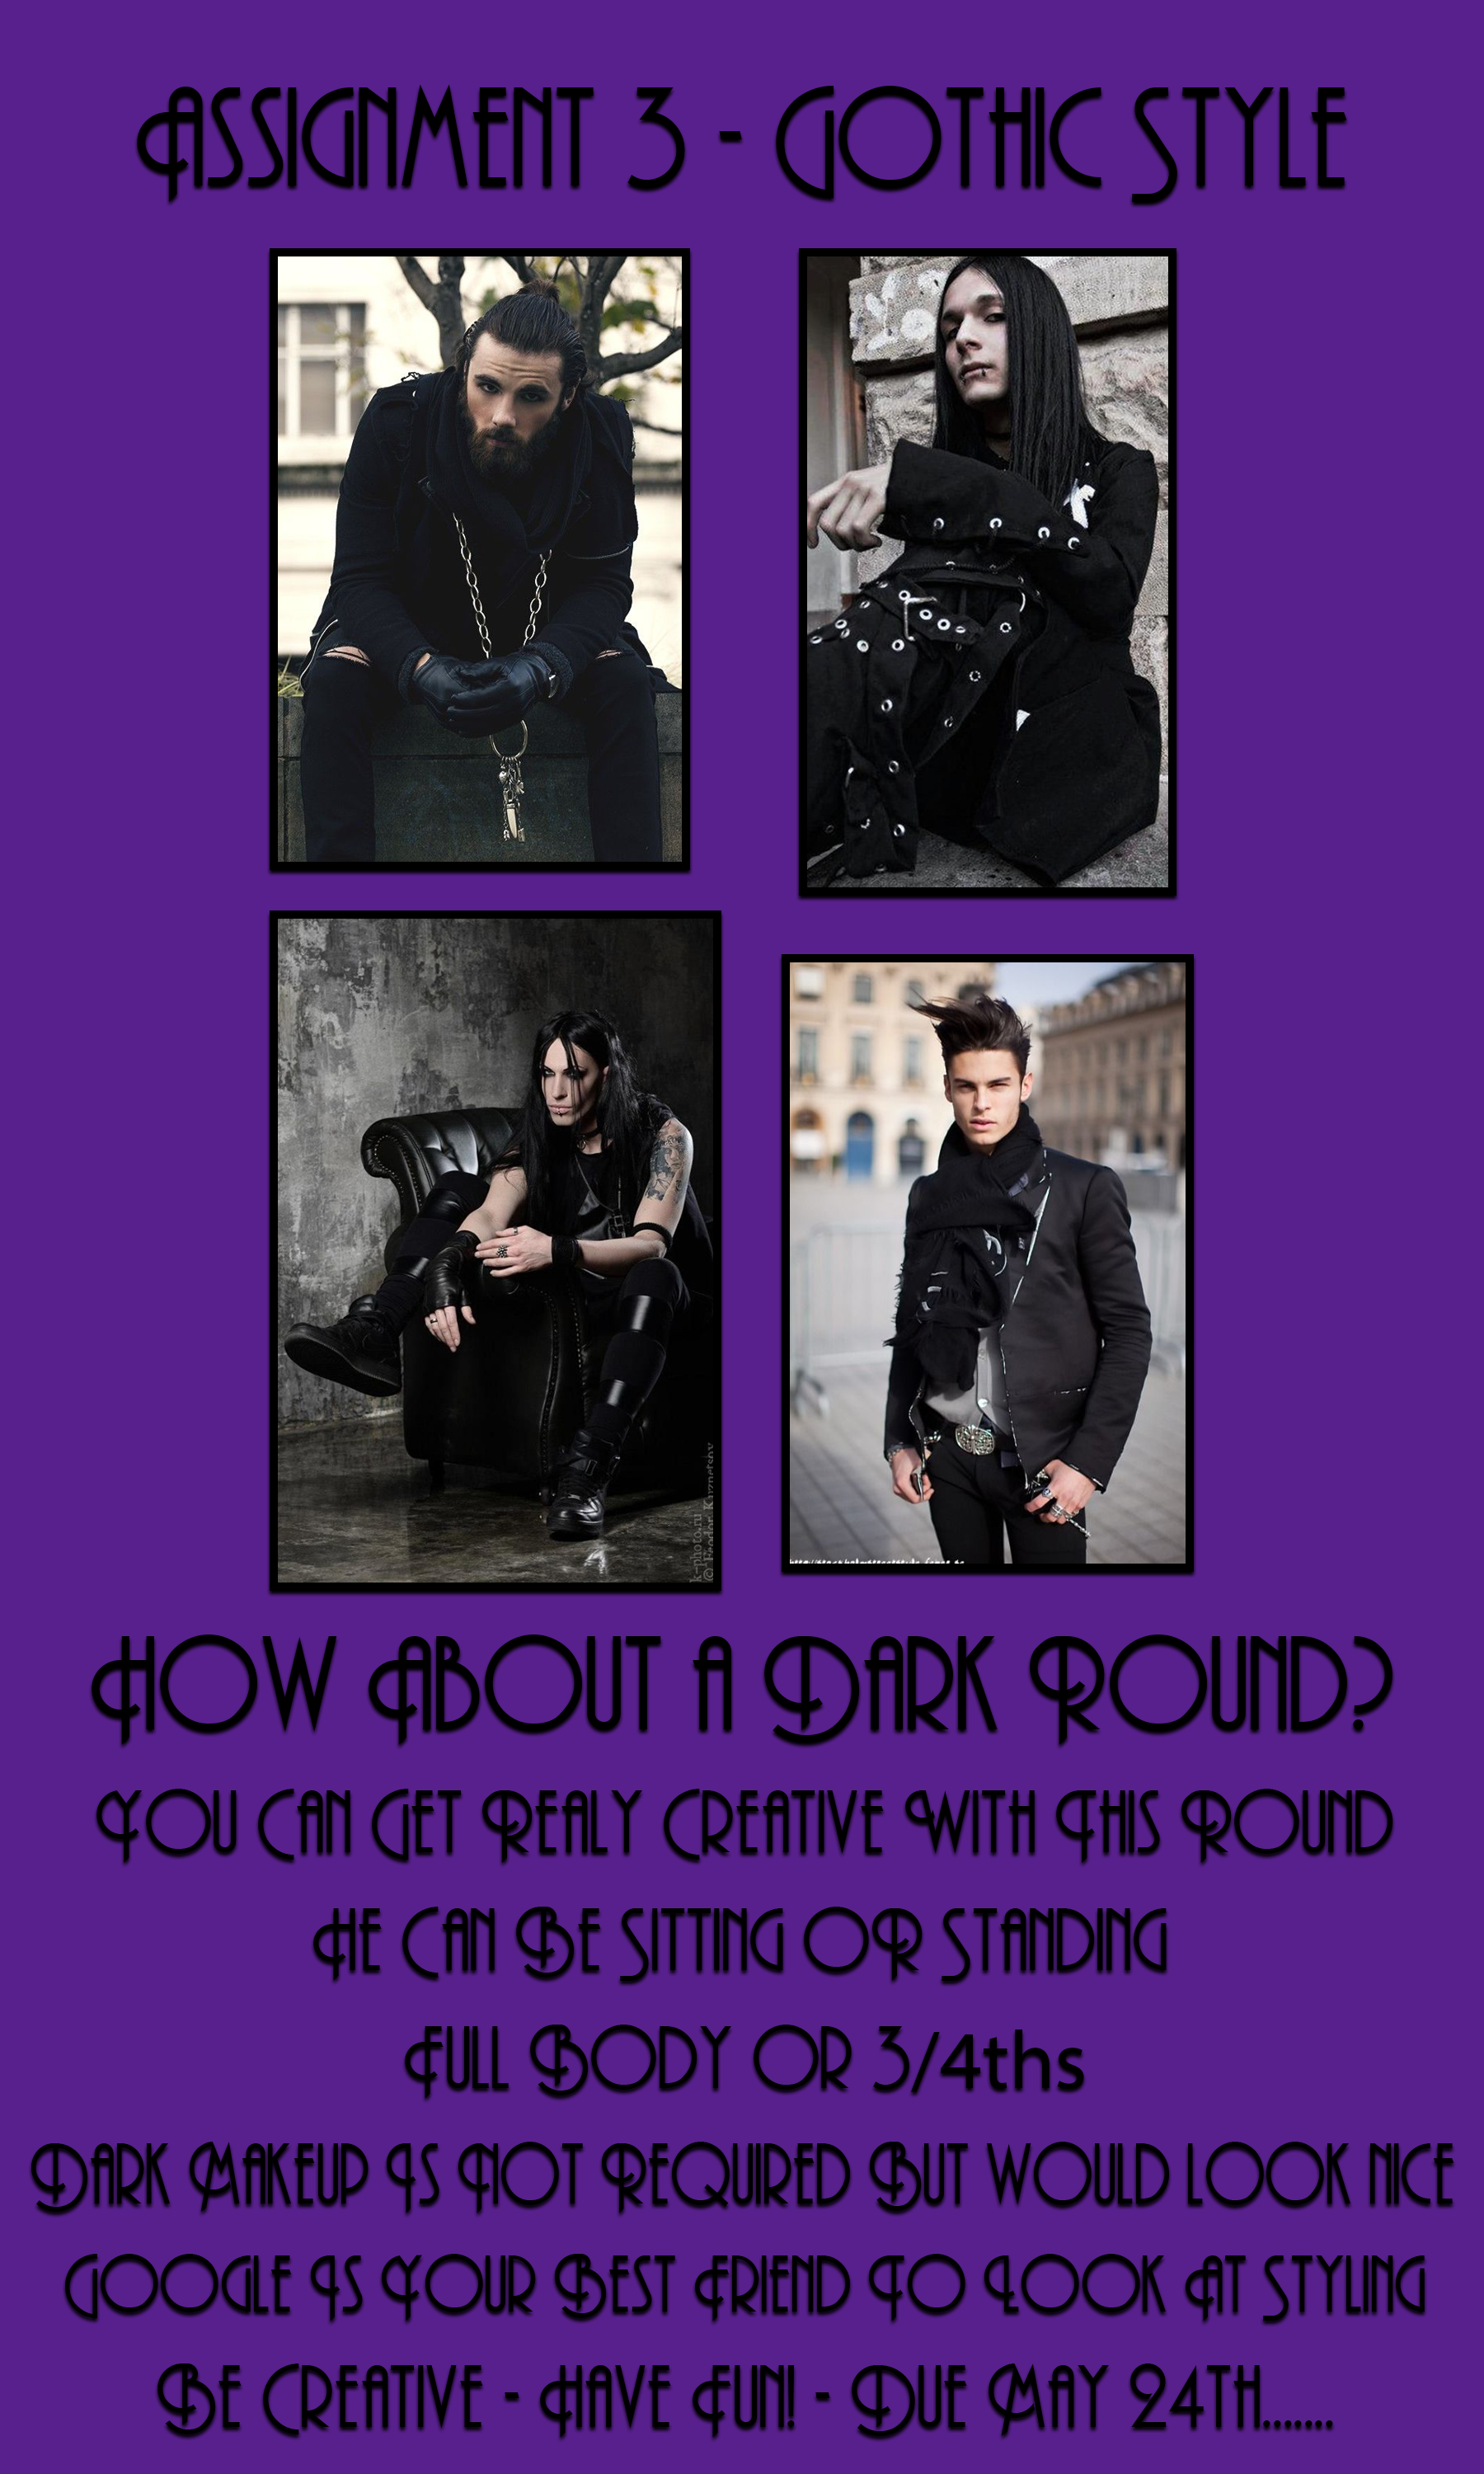 MISTER-FASHION-PLATE-GOTHIC-STYLING-ROUND.png